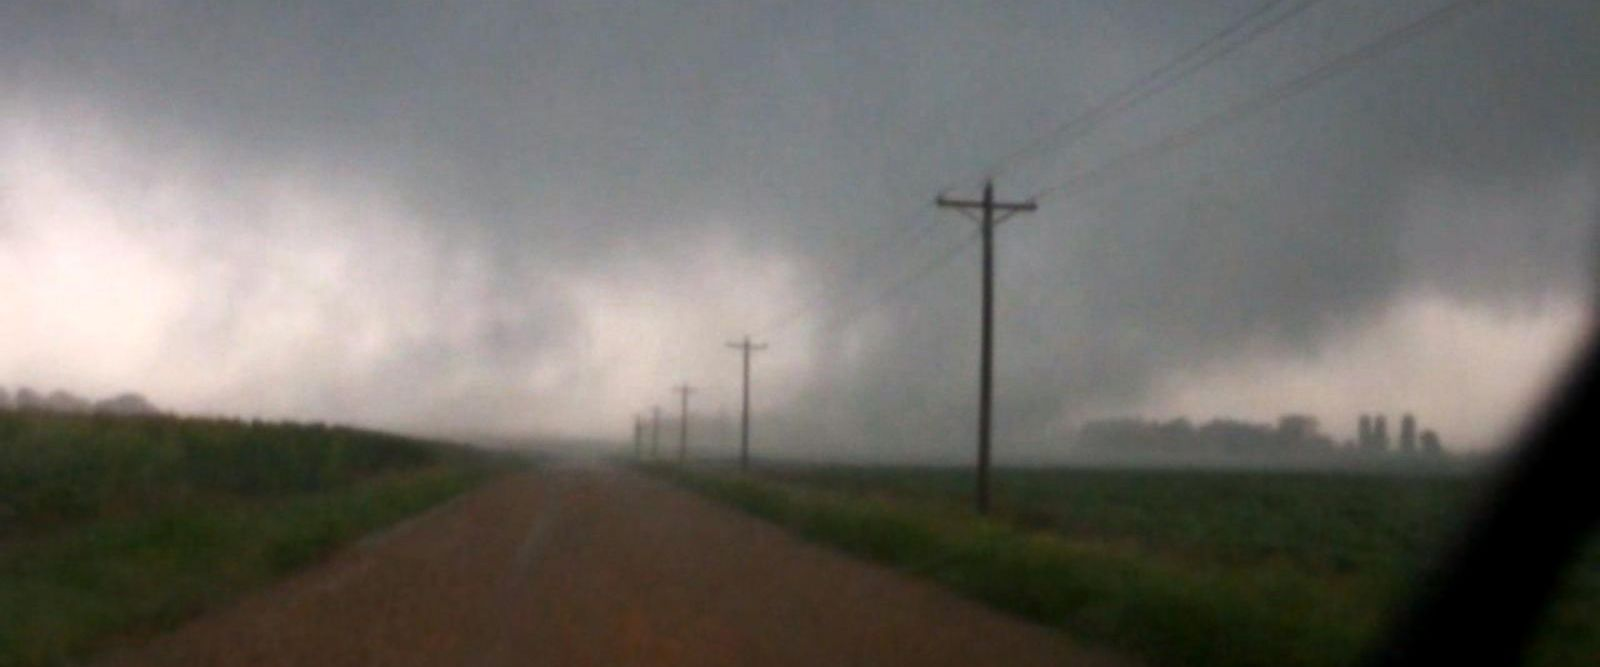 VIDEO: Millions of people on severe weather alerts from Michigan to Pennsylvania